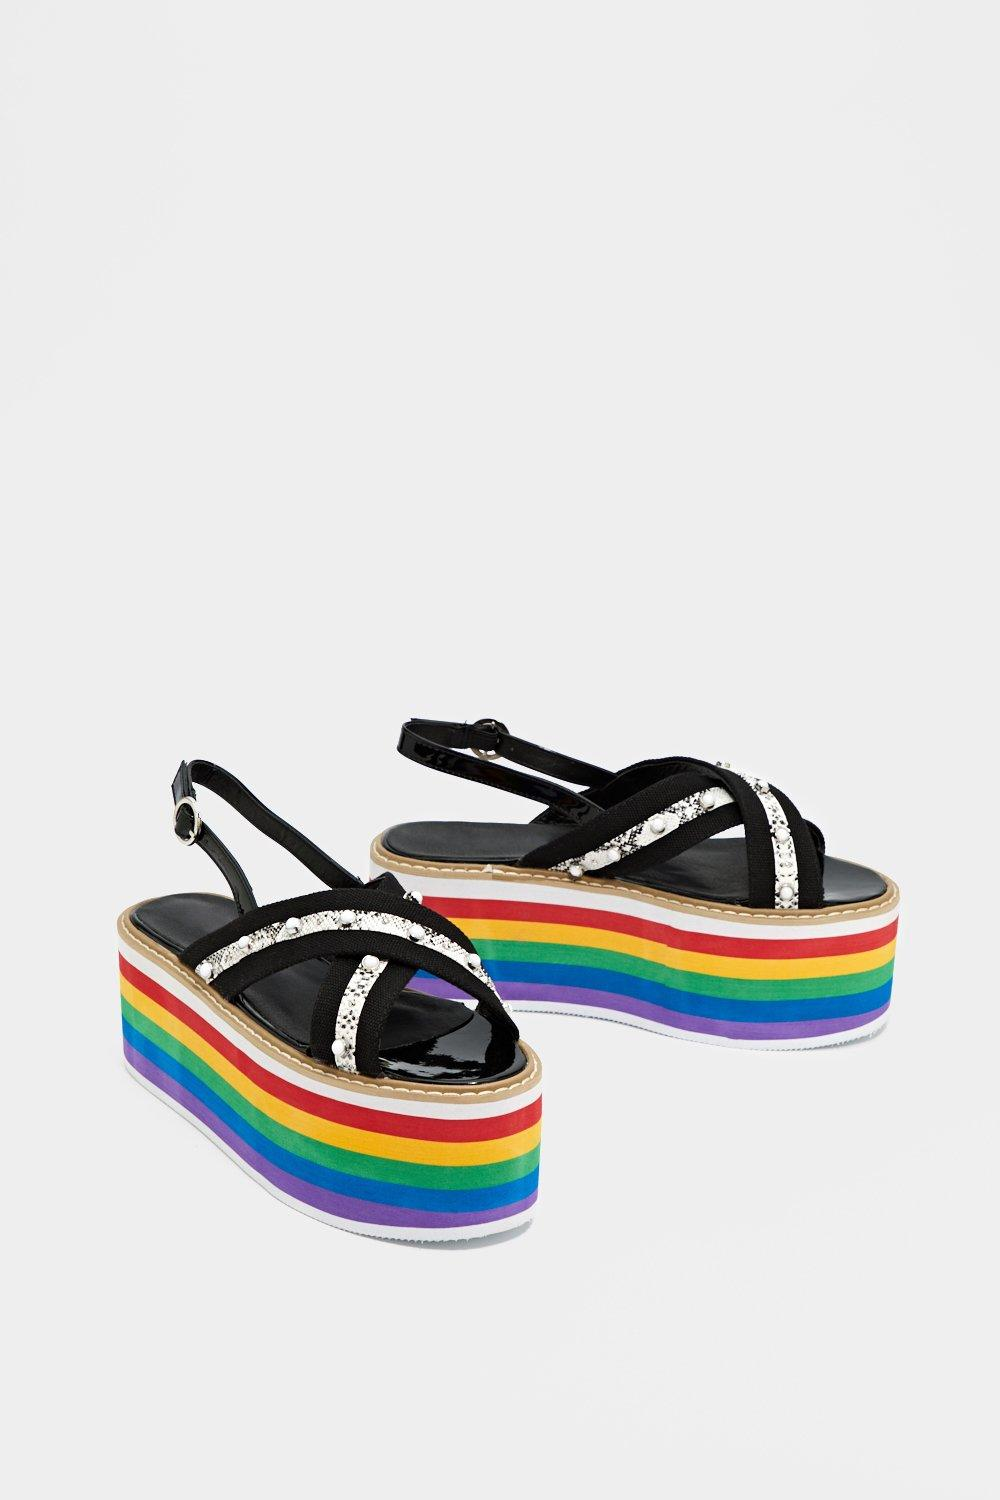 Do It with Pride Platform Sandal really online outlet footlocker pictures cheap sale pre order 5xRQ6D